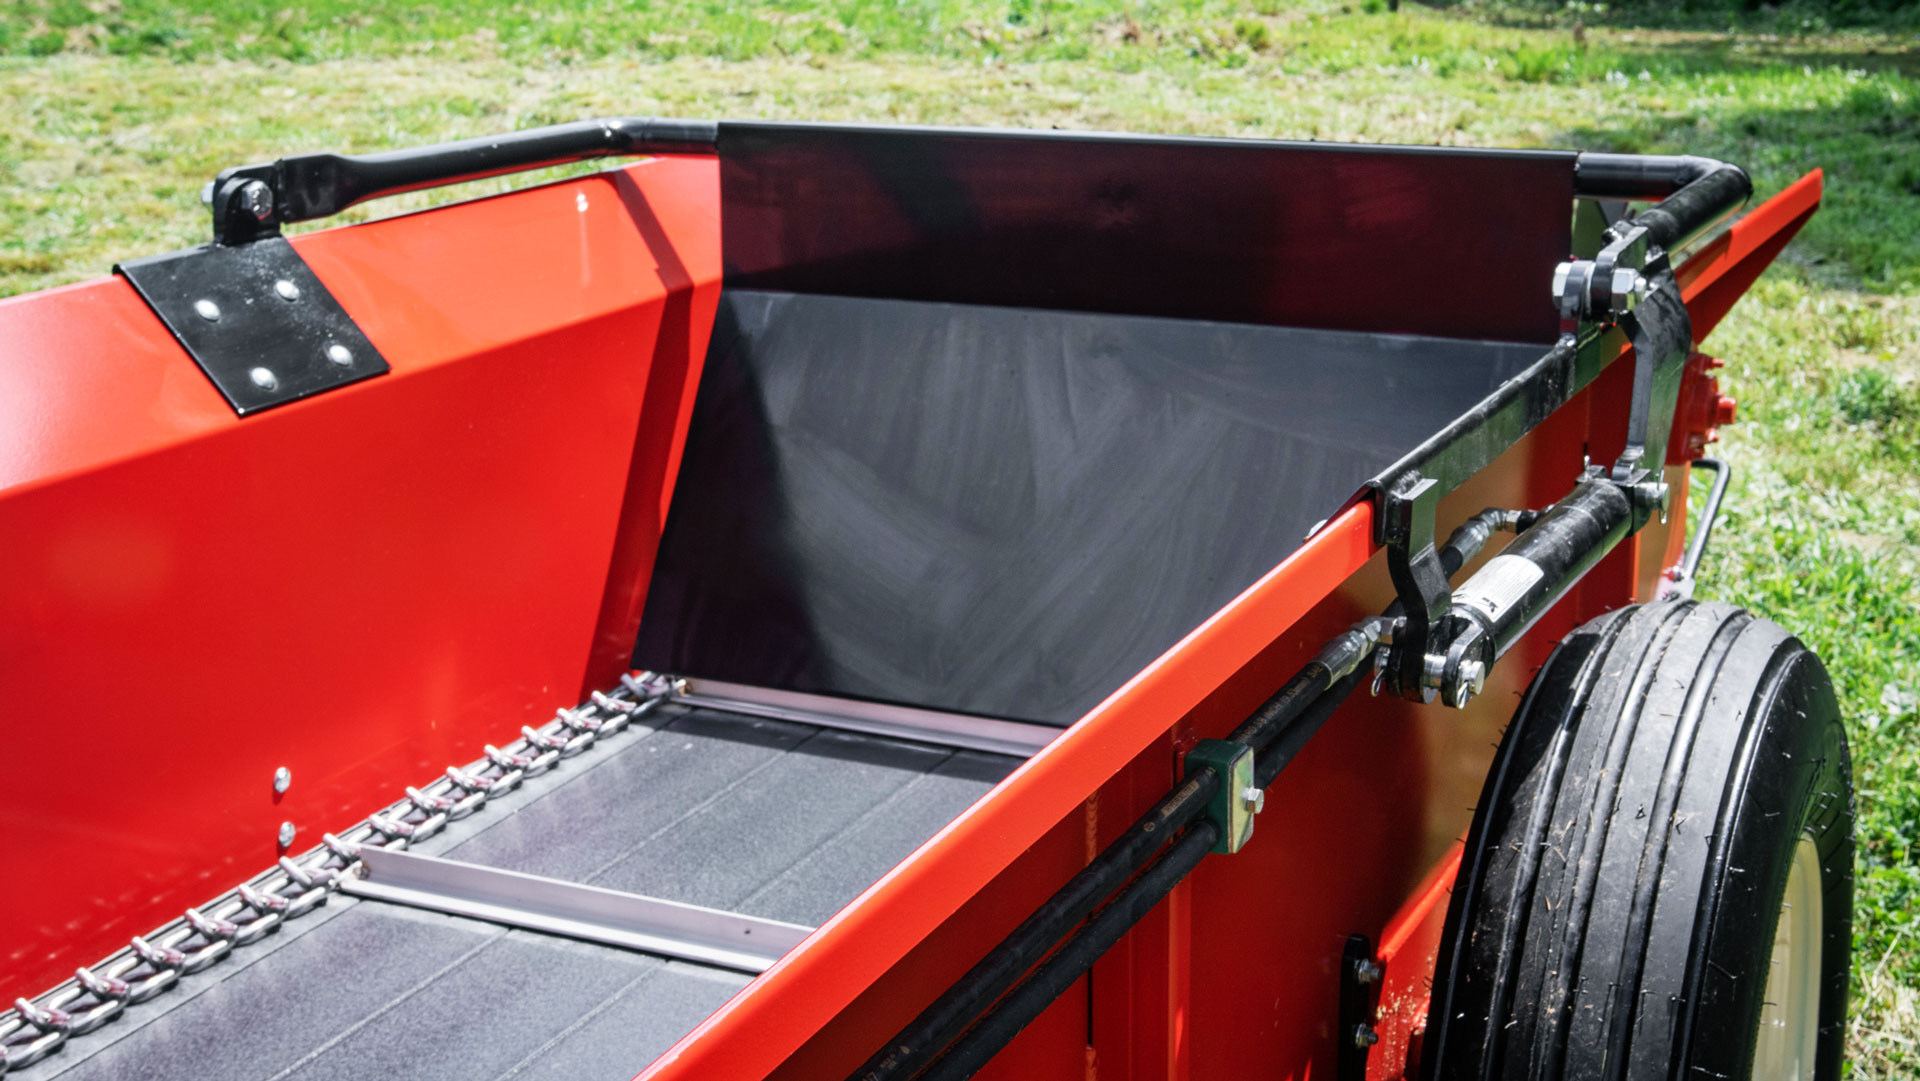 PTO manure spreader by conestoga manufacturing with hydraulic endgate.